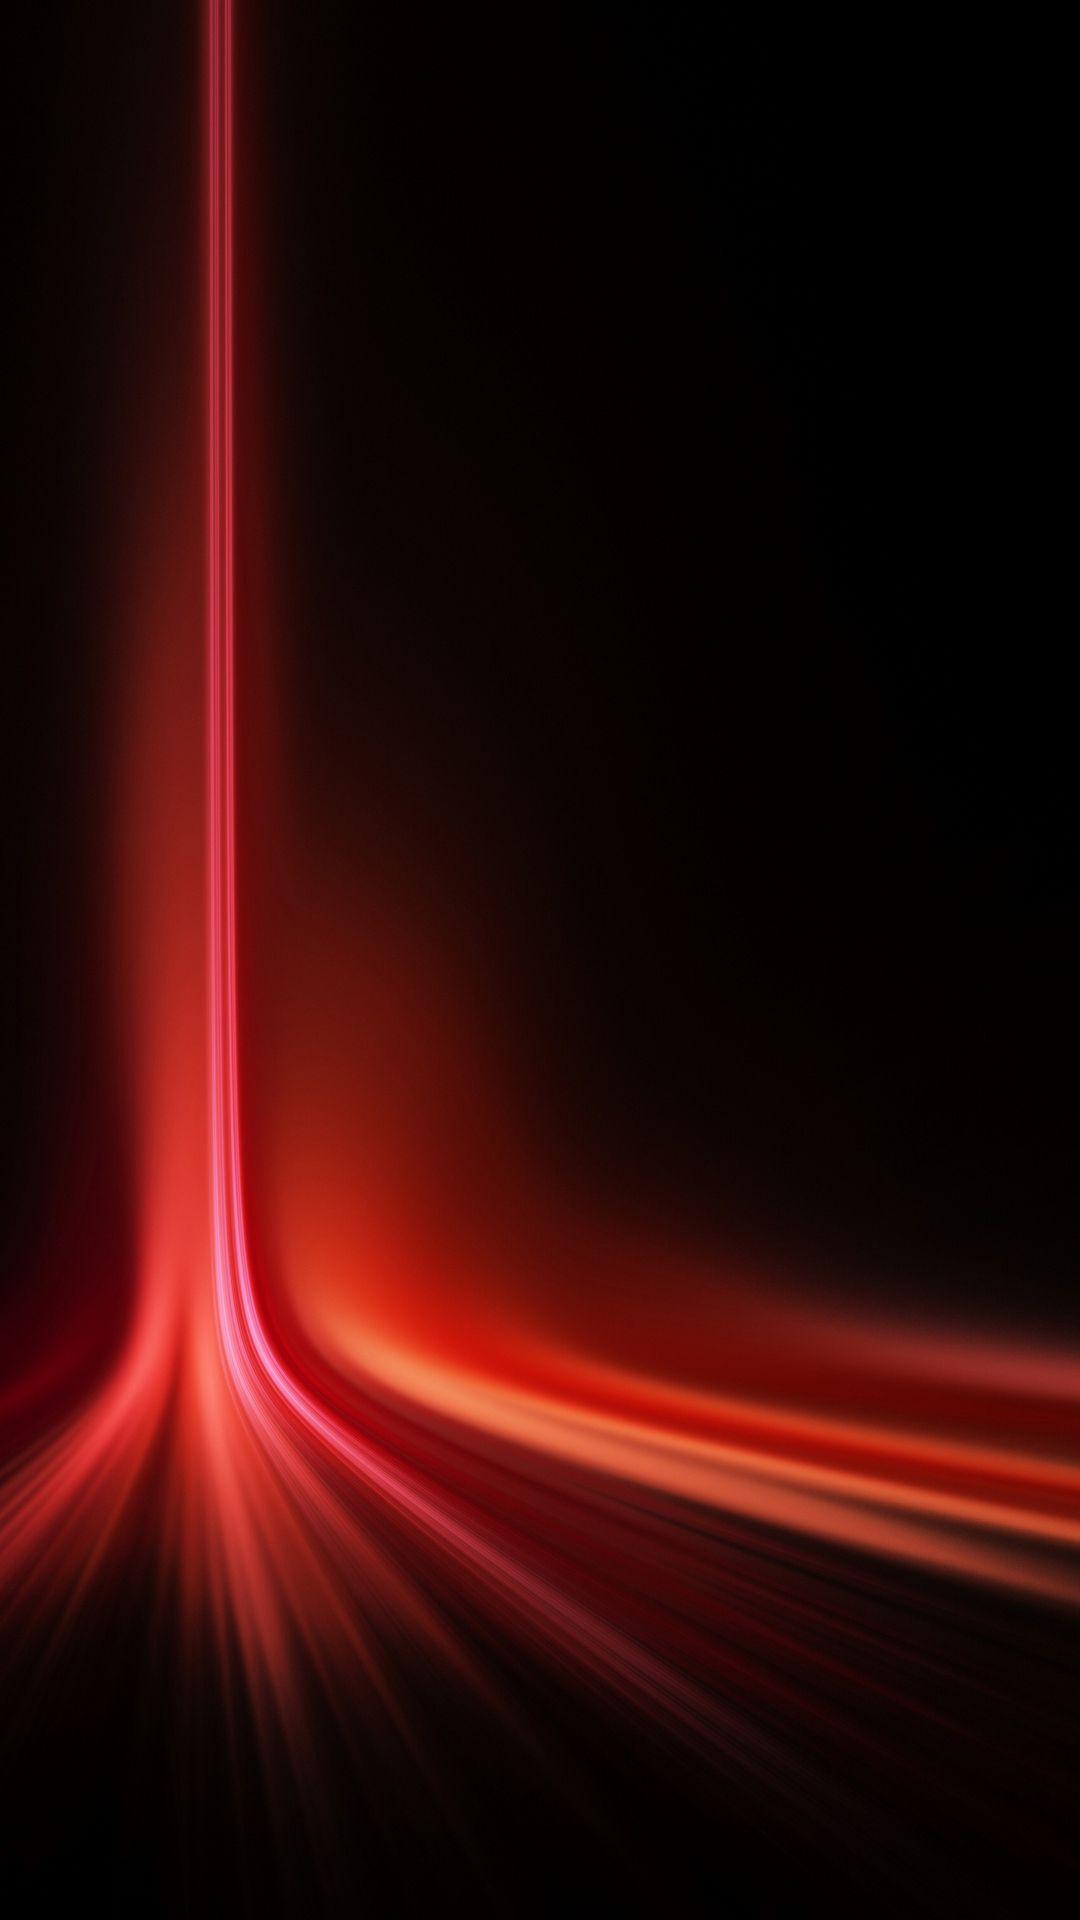 vertical red laser light spread android wallpaper | dark wallpapers